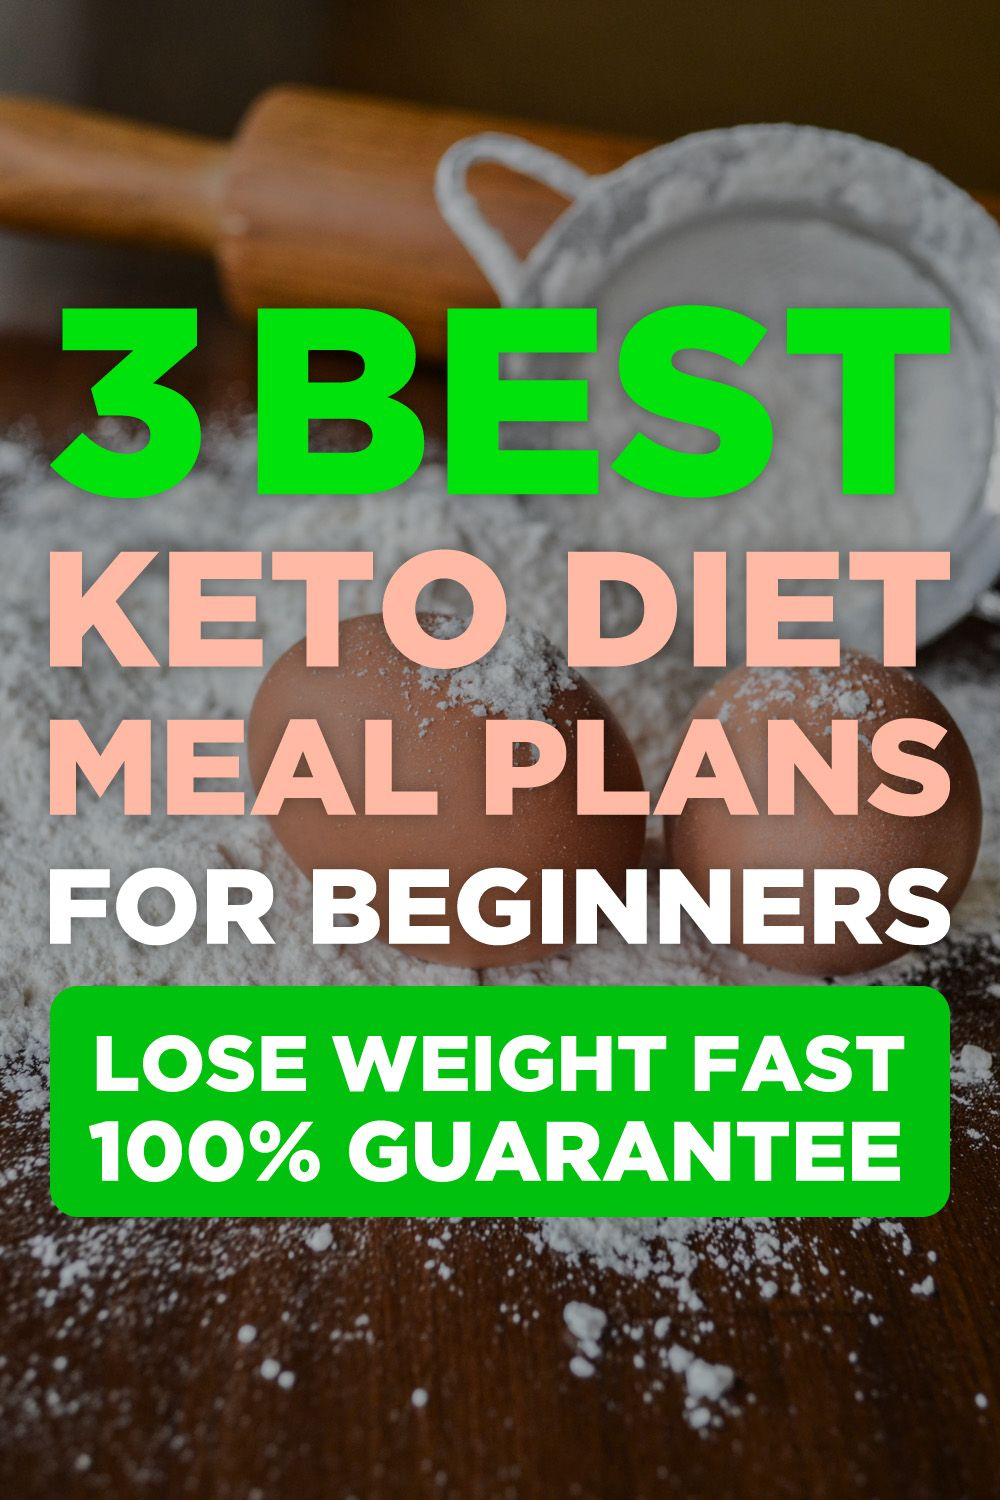 3 Best Lose Weight, weight losing diets, lose tummy fat in a week, low fat diet benefits,